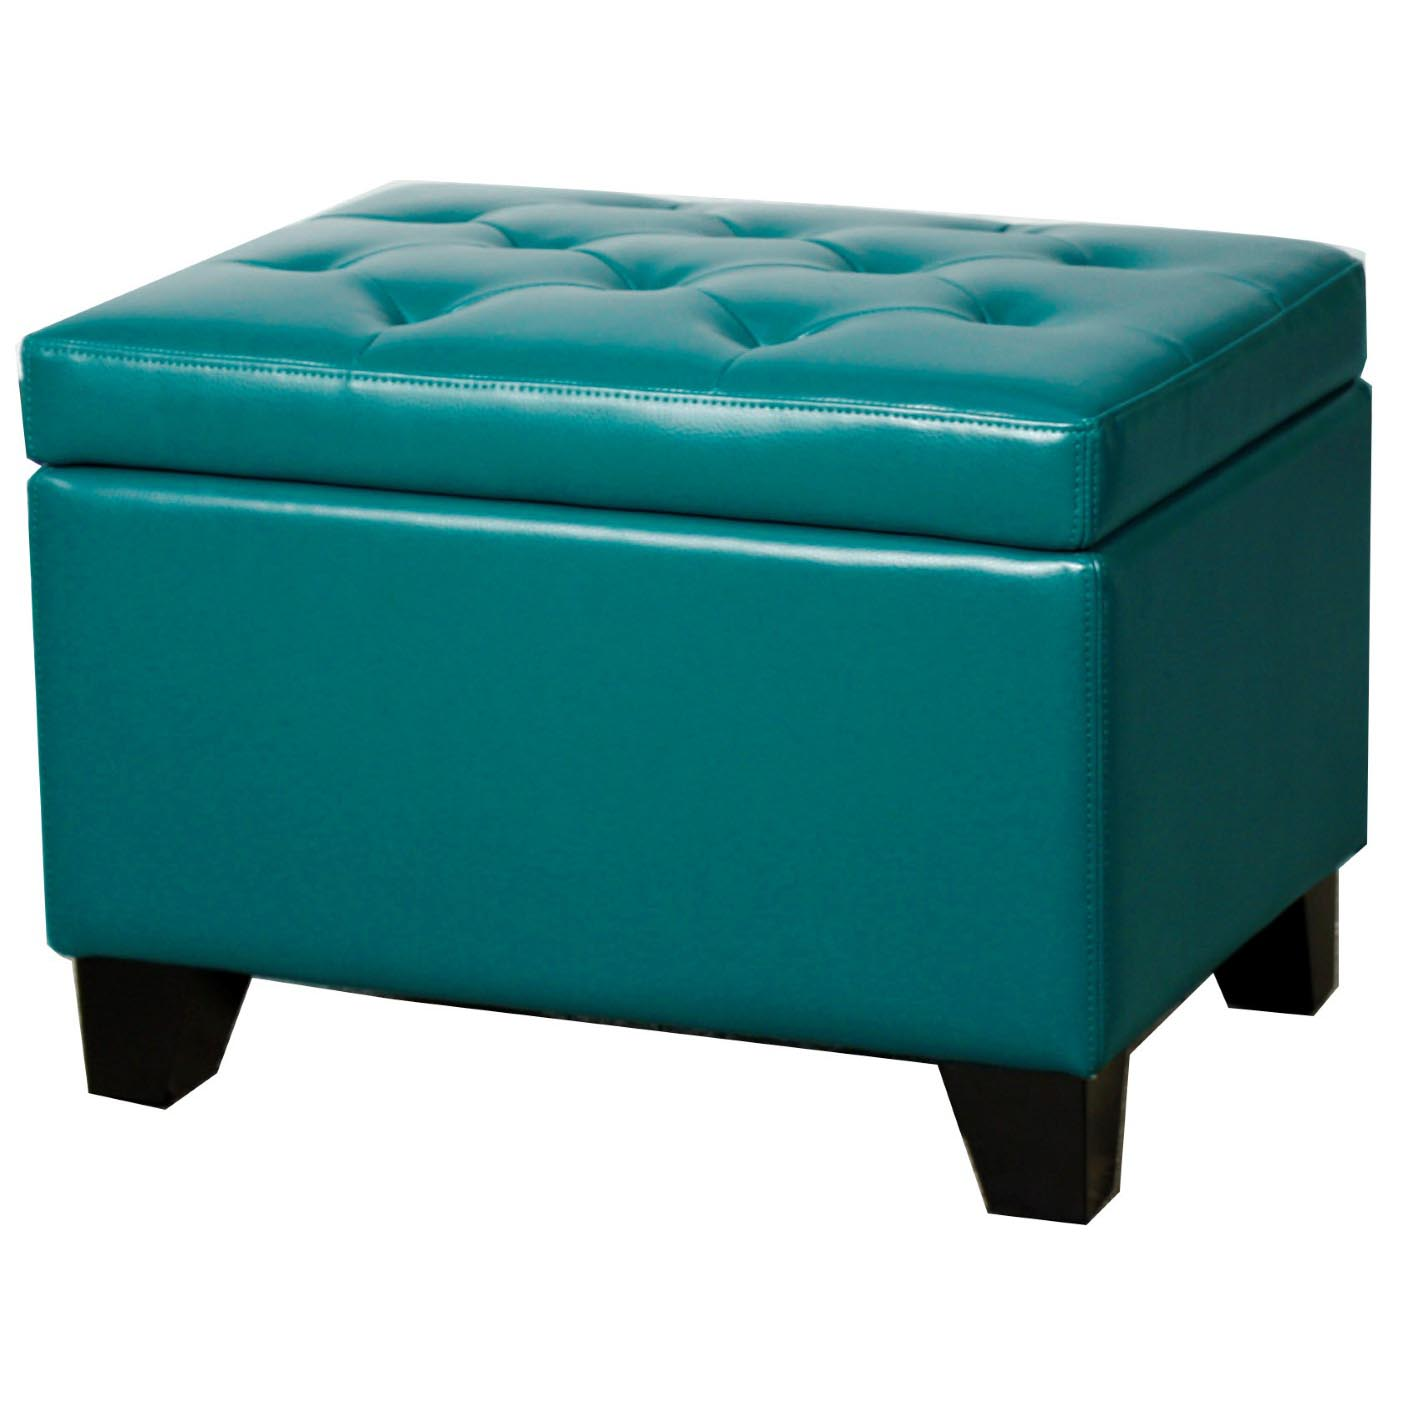 Julian Rectangular Bonded Leather Storage Ottoman, Turquoise By NPD (New  Pacific Direct)